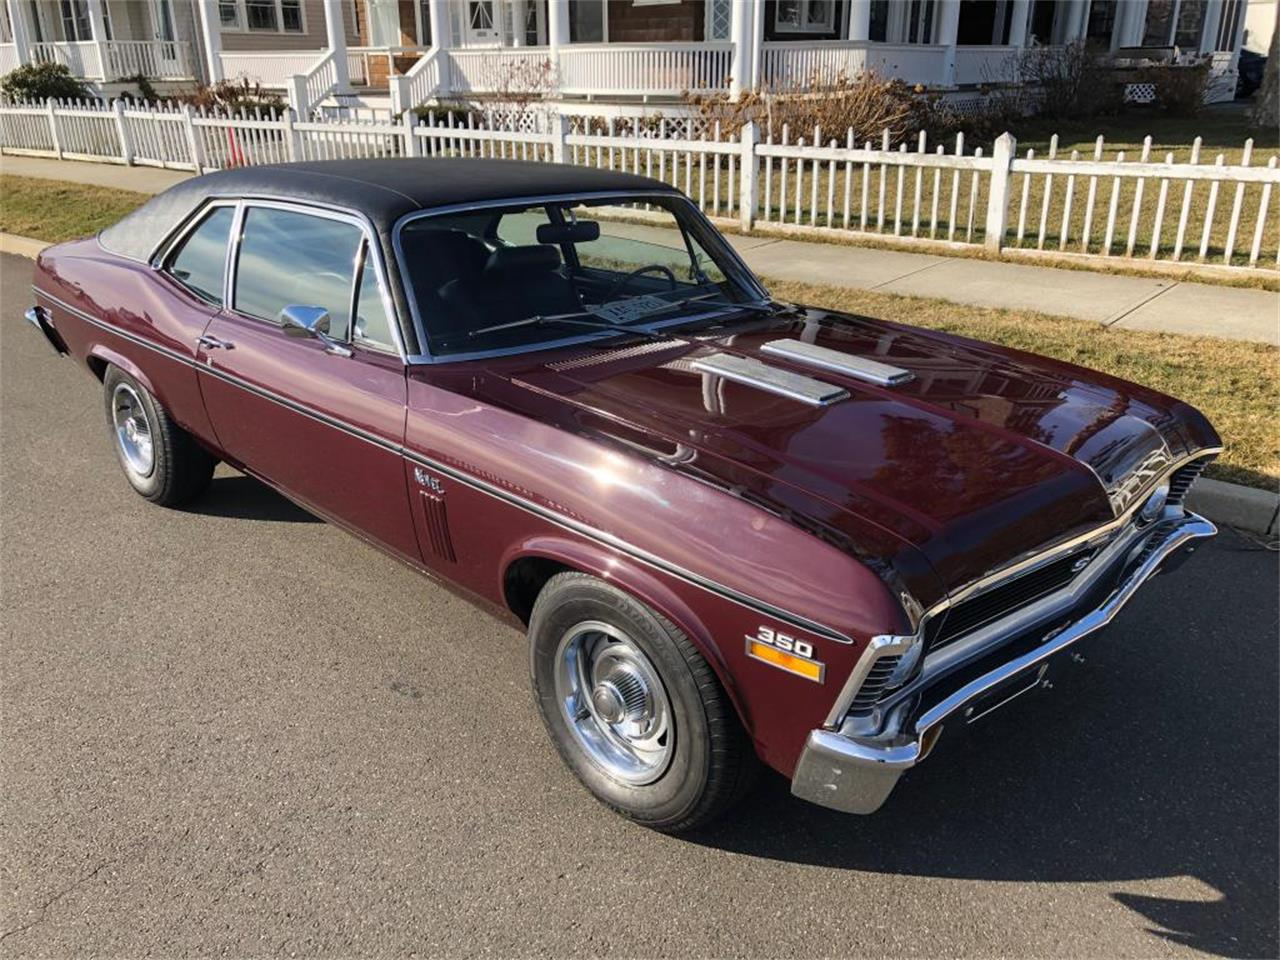 1971 Chevrolet Nova for sale in Milford City, CT – photo 2